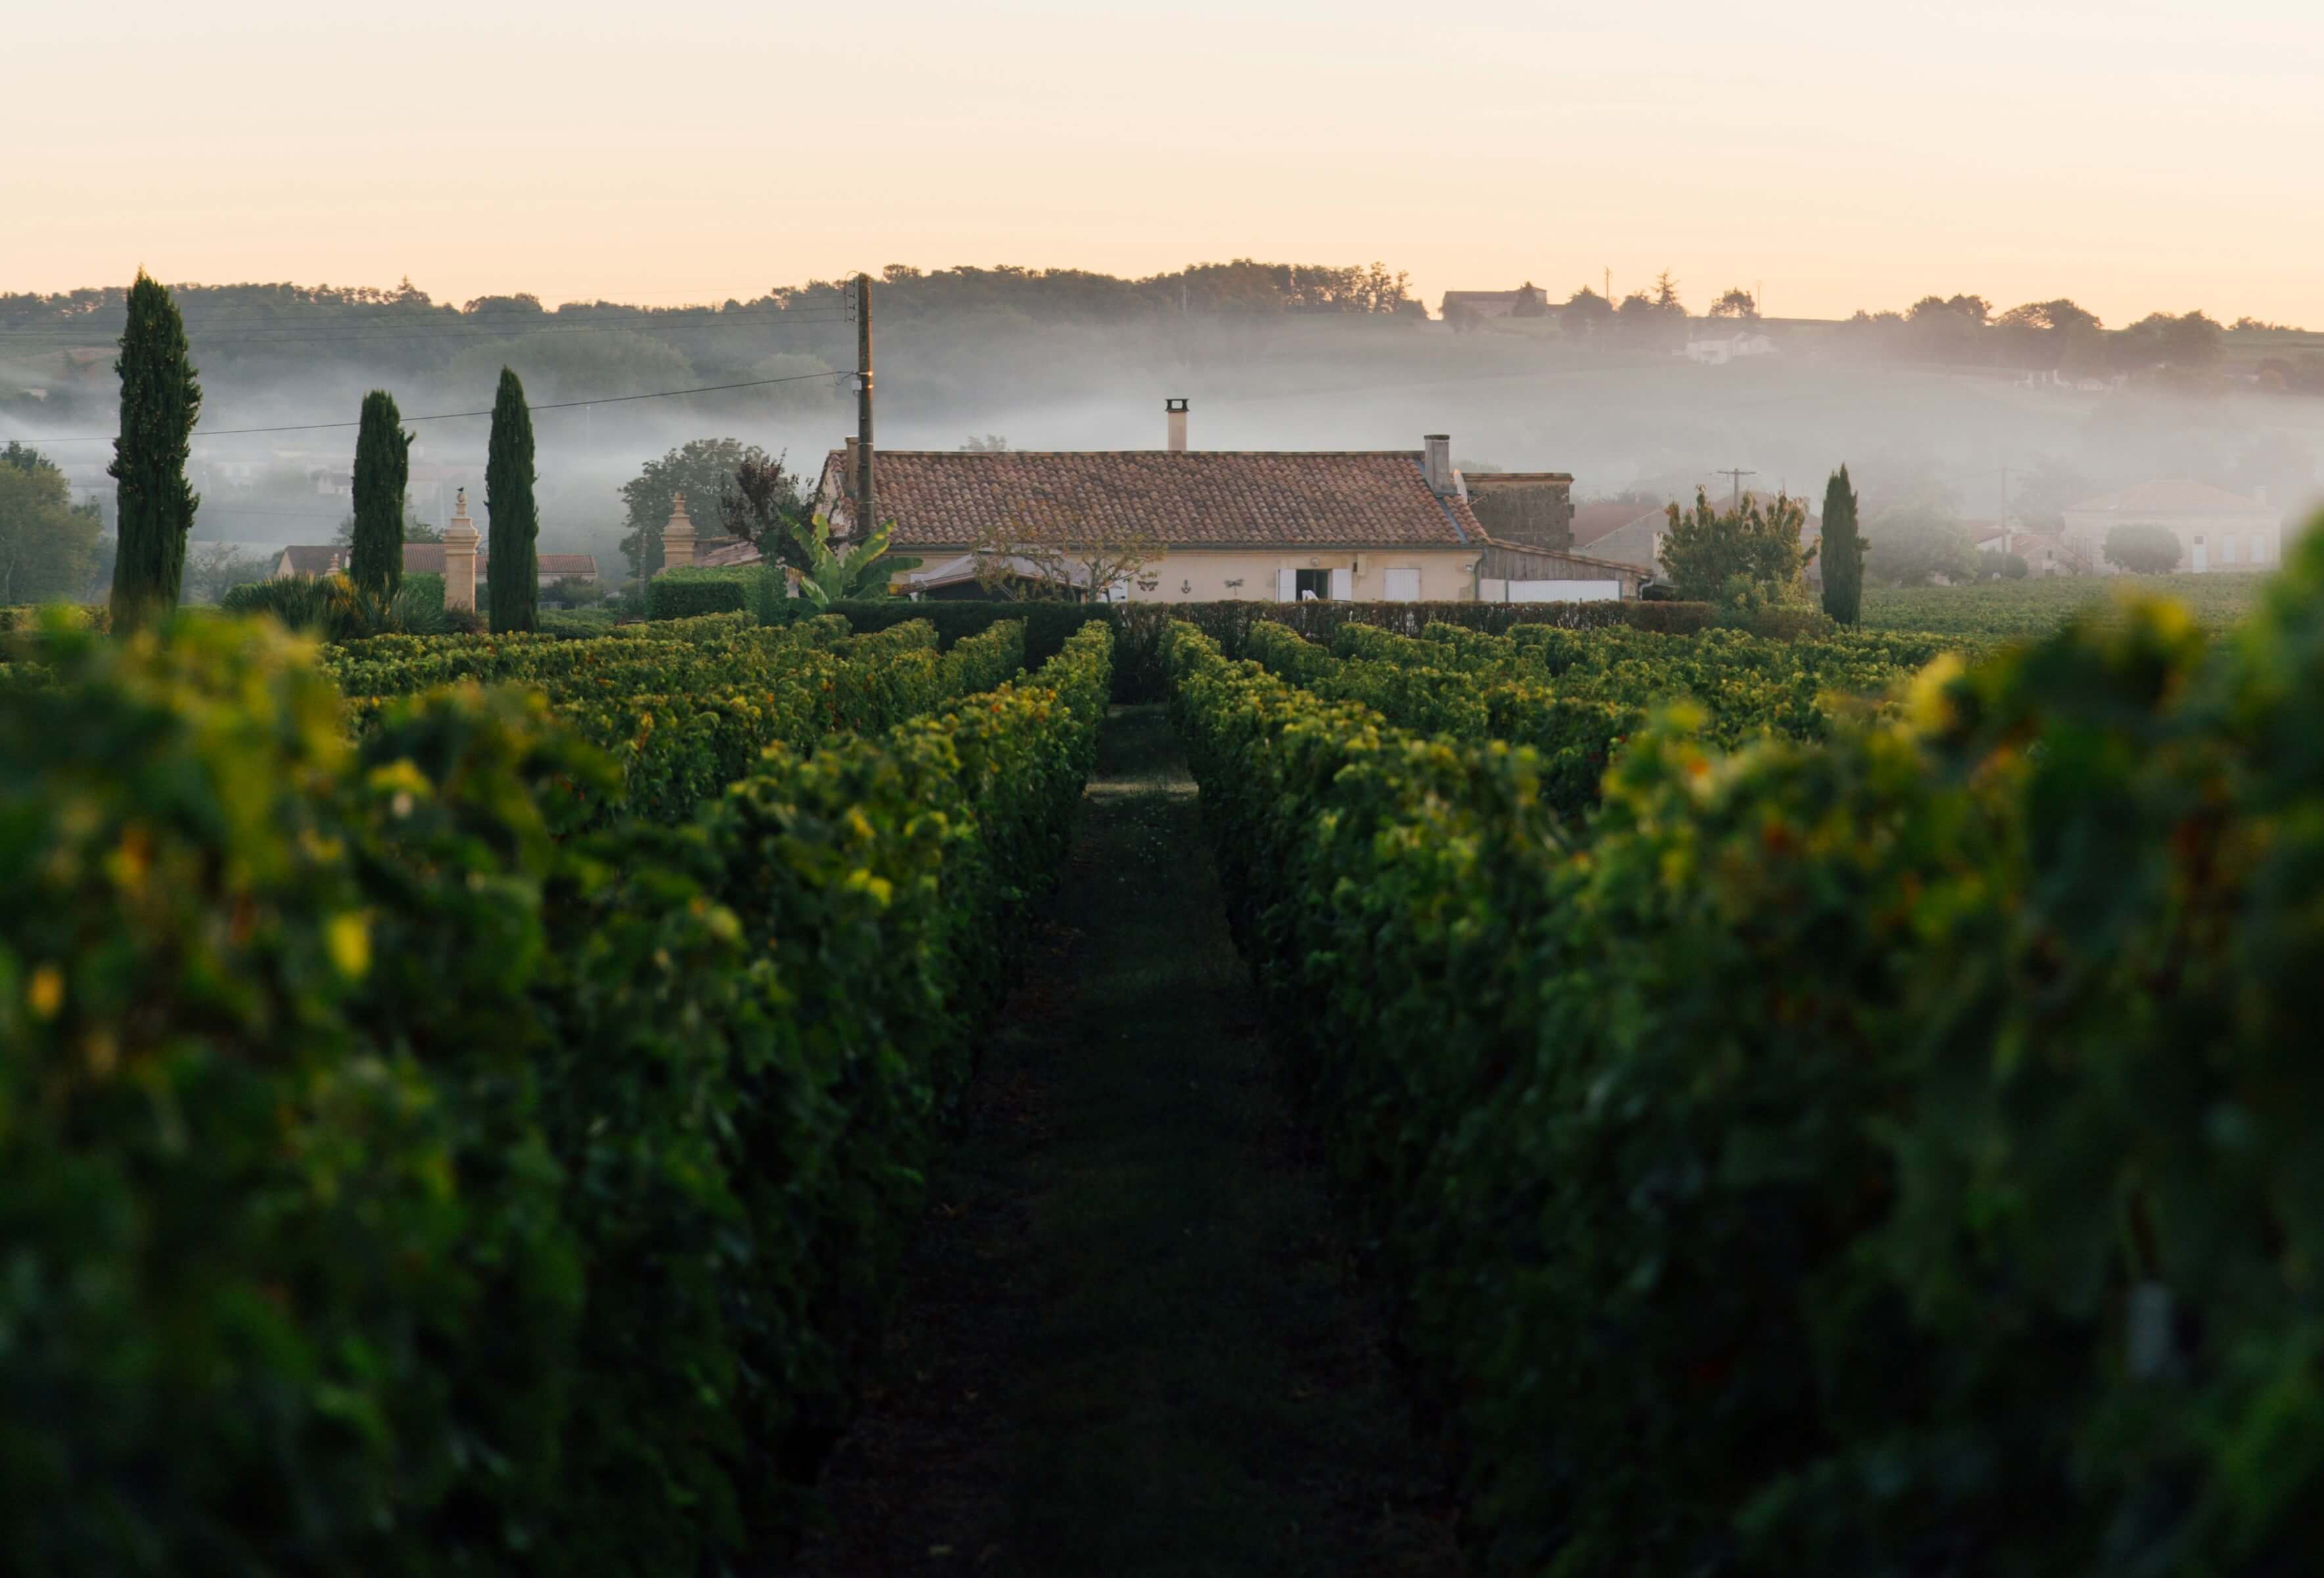 small family-owned vineyard farms business